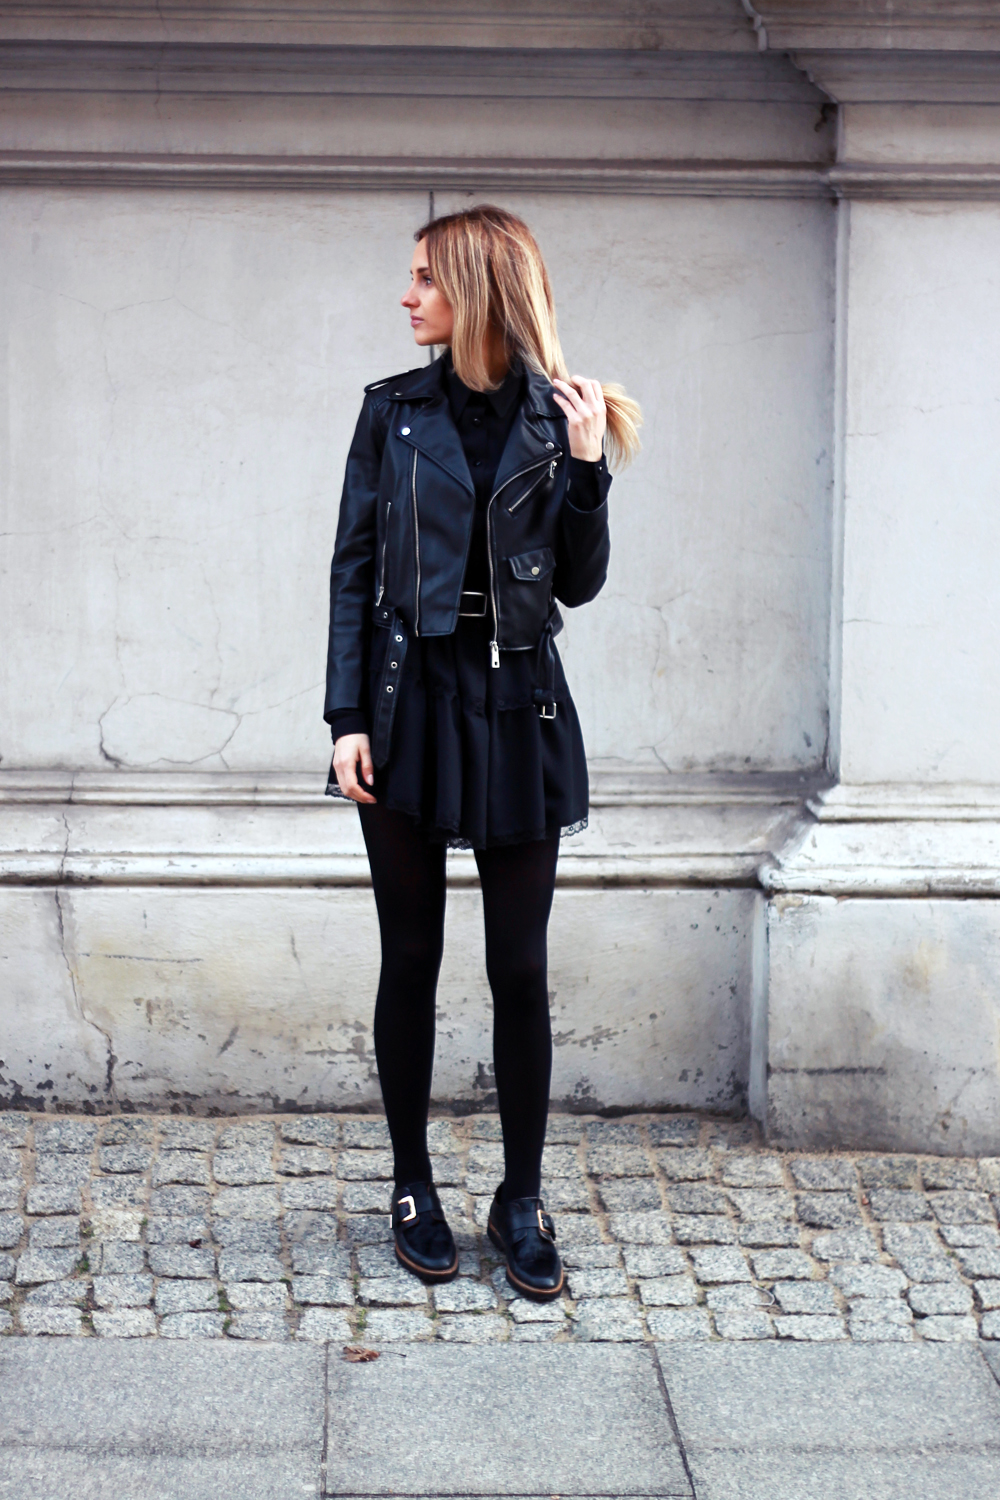 black dress zara leather jacket blonde tumblr girl look lookbook what to wear